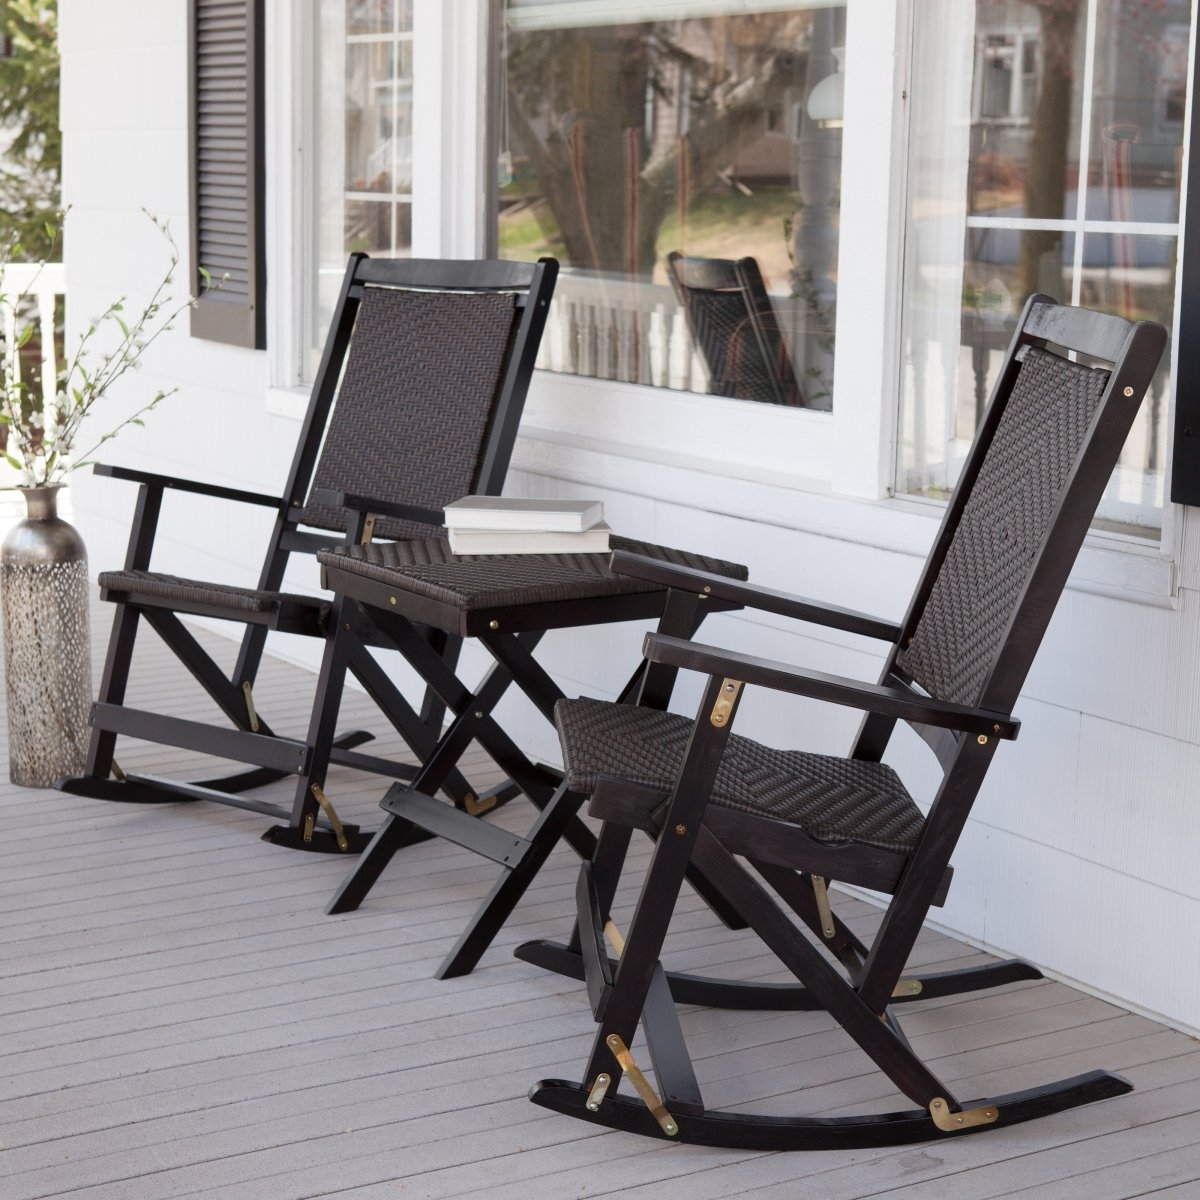 Patio Rocking Chairs Black : Spectacular And Sensational Patio For Outdoor Patio Rocking Chairs (#7 of 15)